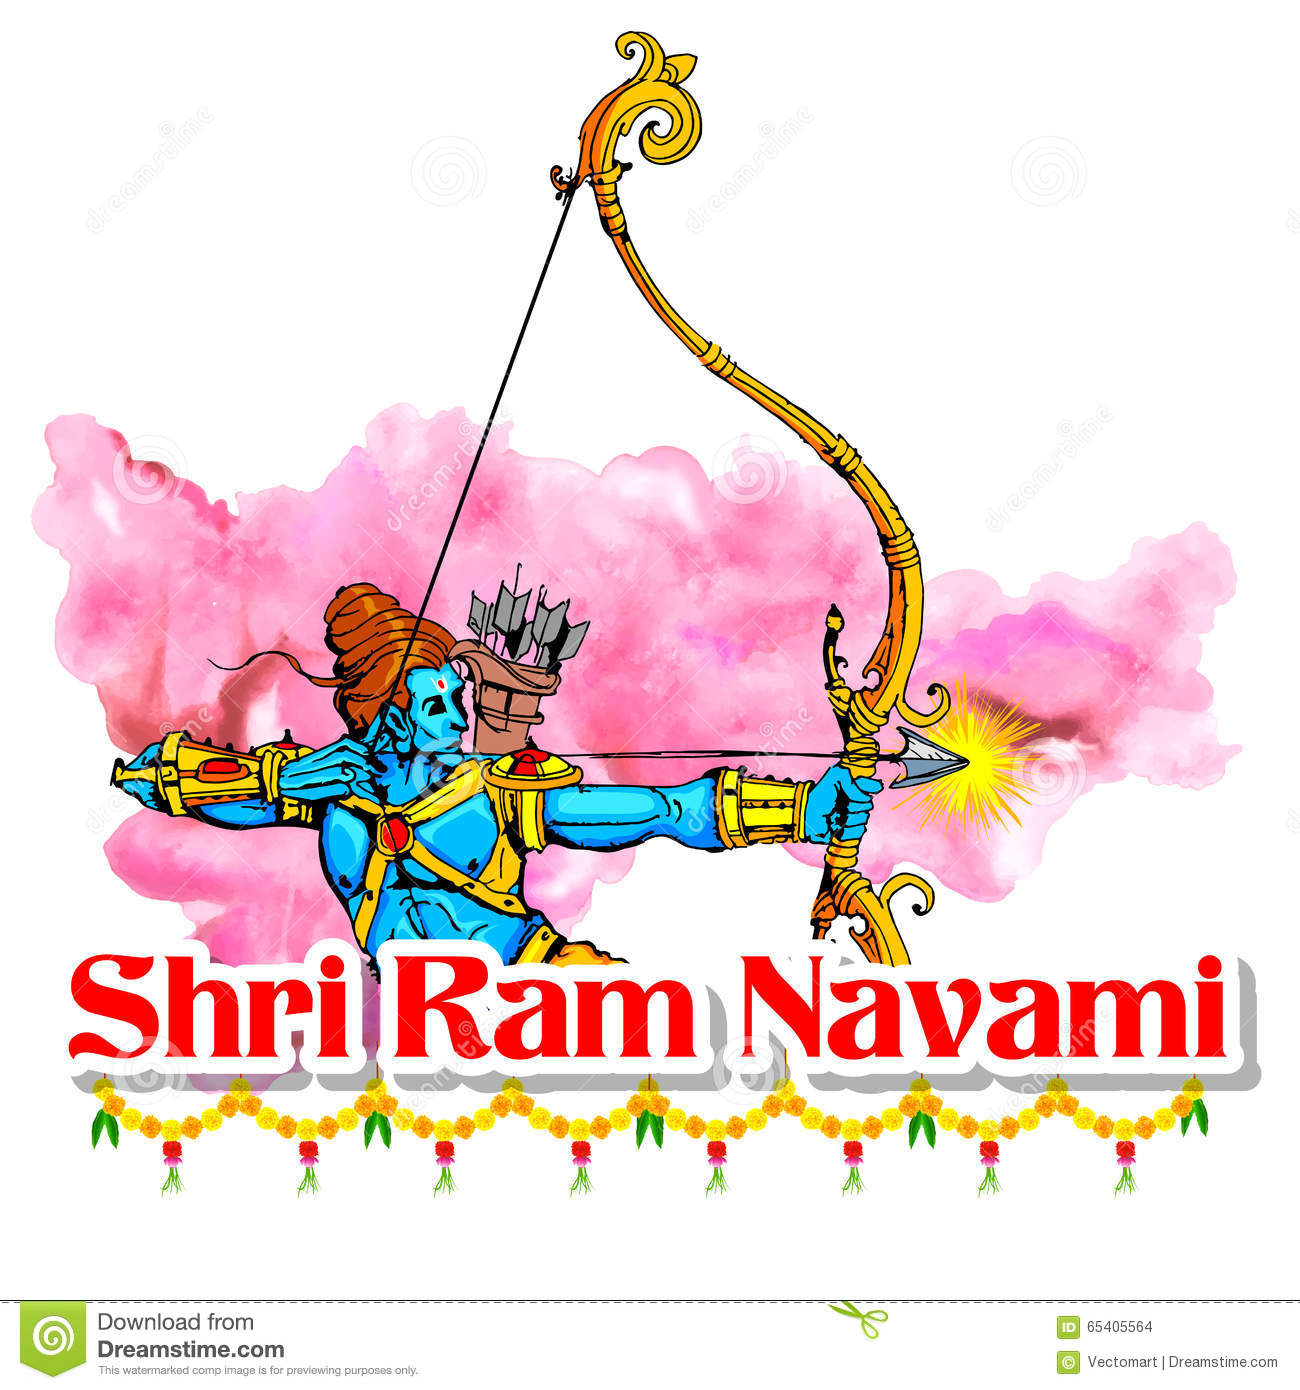 ram navami festival essay Ram navami is a hindu spring festival which is celebrated in india in the month of 'chaitra' as the birthday of lord rama.